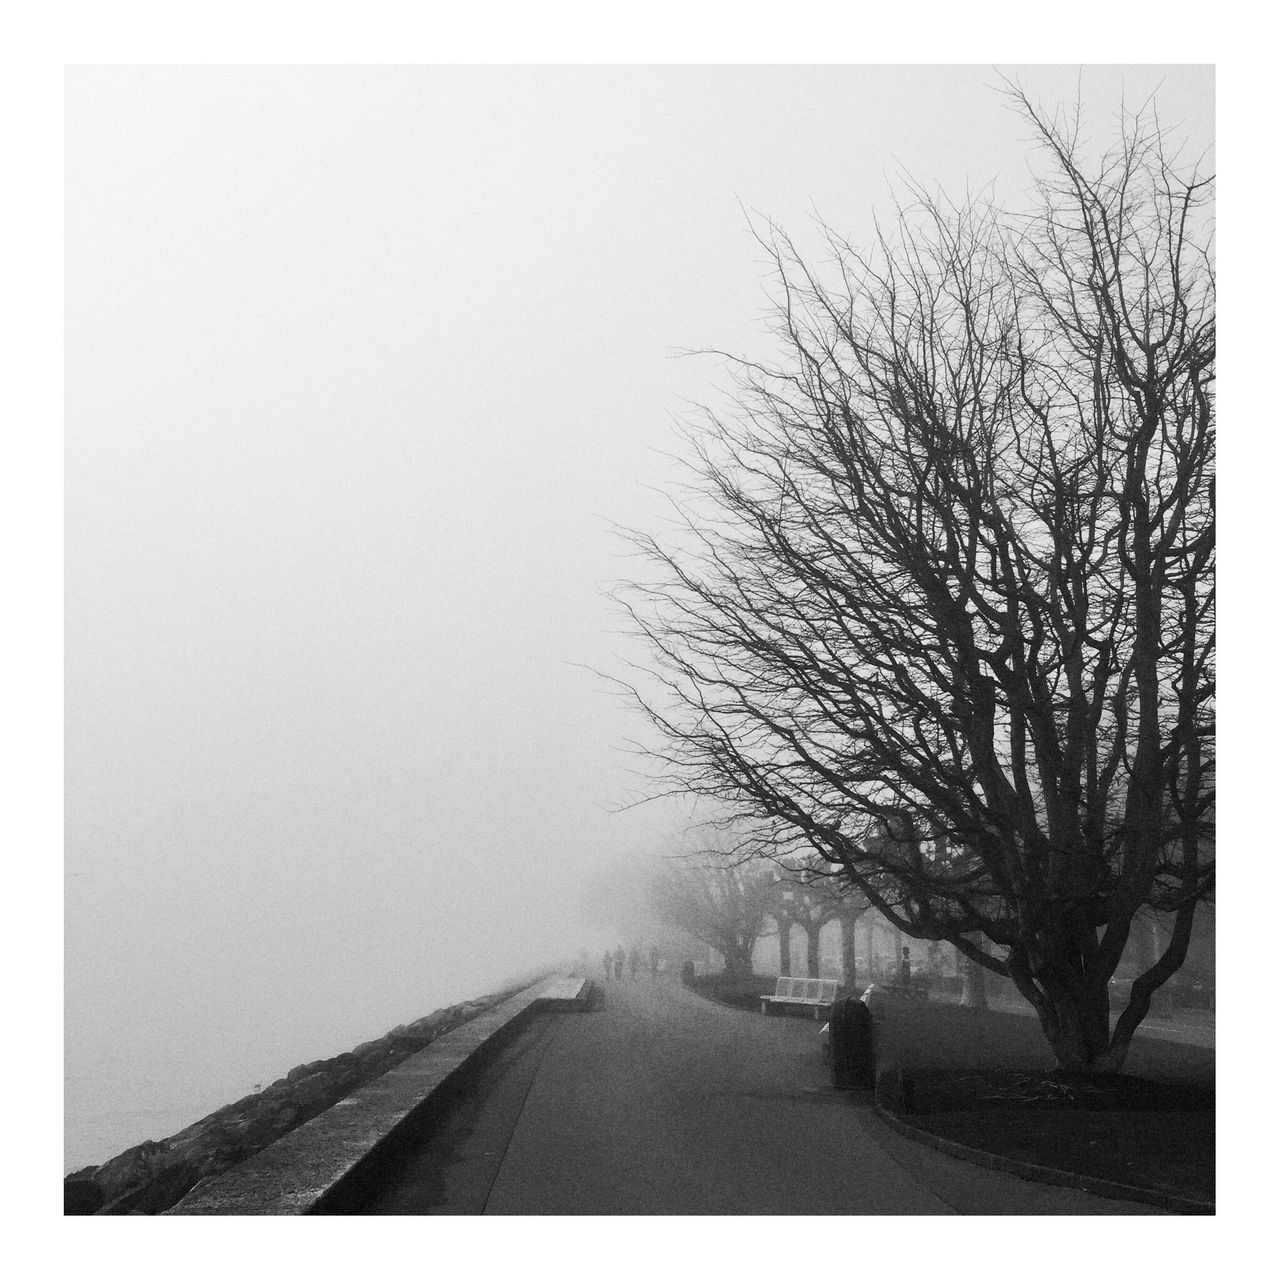 Tree The Way Forward Nature Cold Temperature Bare Tree Winter Scenics Bea's Mood  Livingwiththehomies Water Calm Igerslausanne Shootermag_usa Shootermag Fog